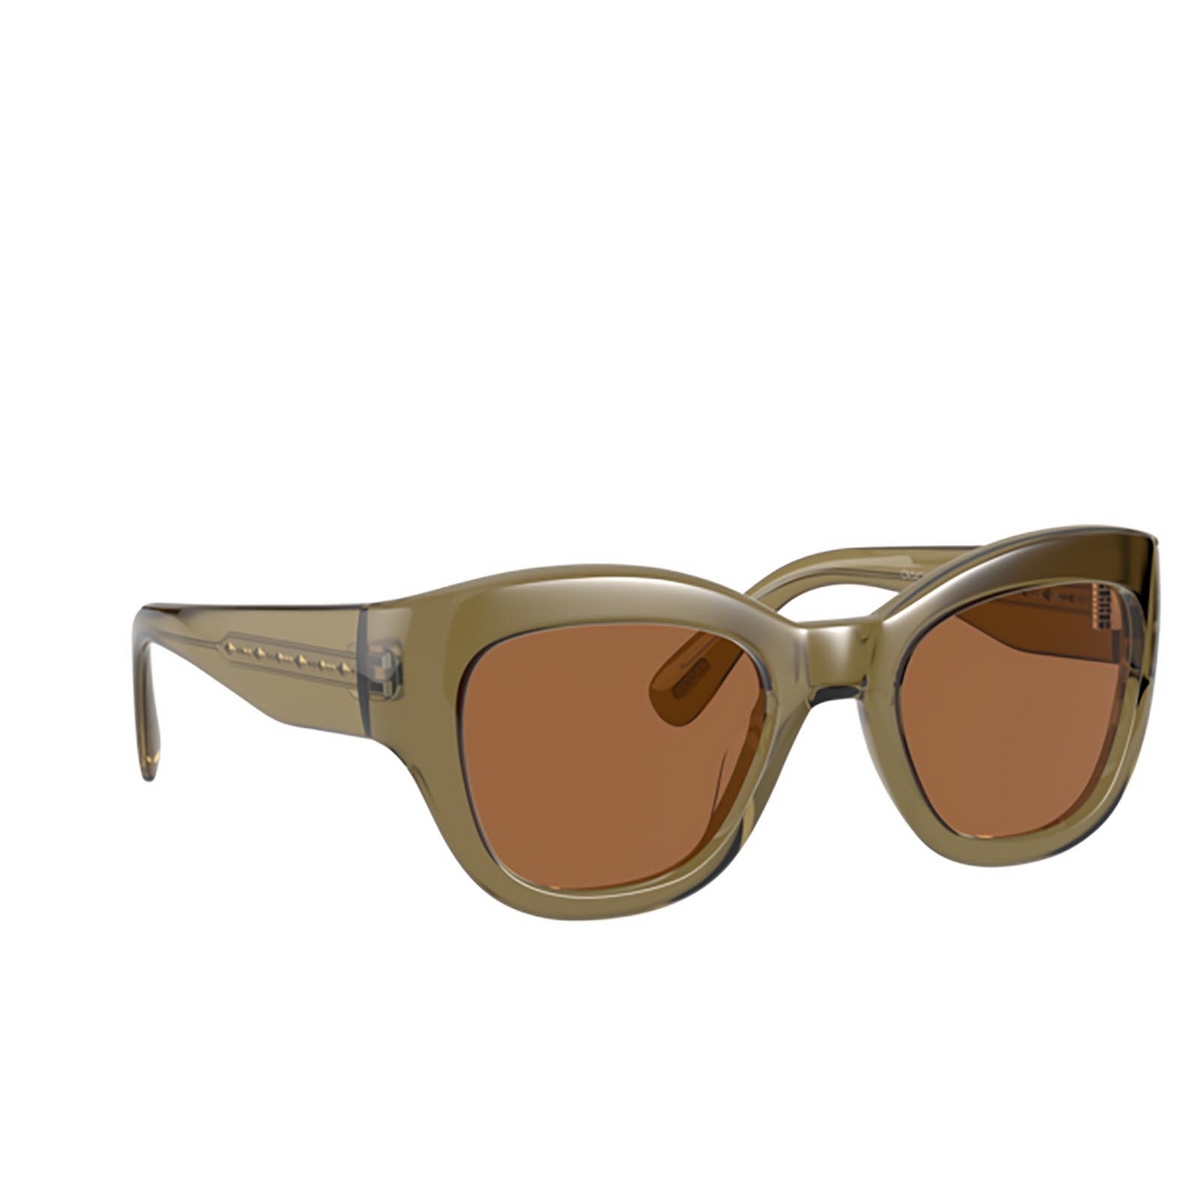 Oliver Peoples® Butterfly Sunglasses: Lalit OV5430SU color Dusty Olive 167873 - three-quarters view.